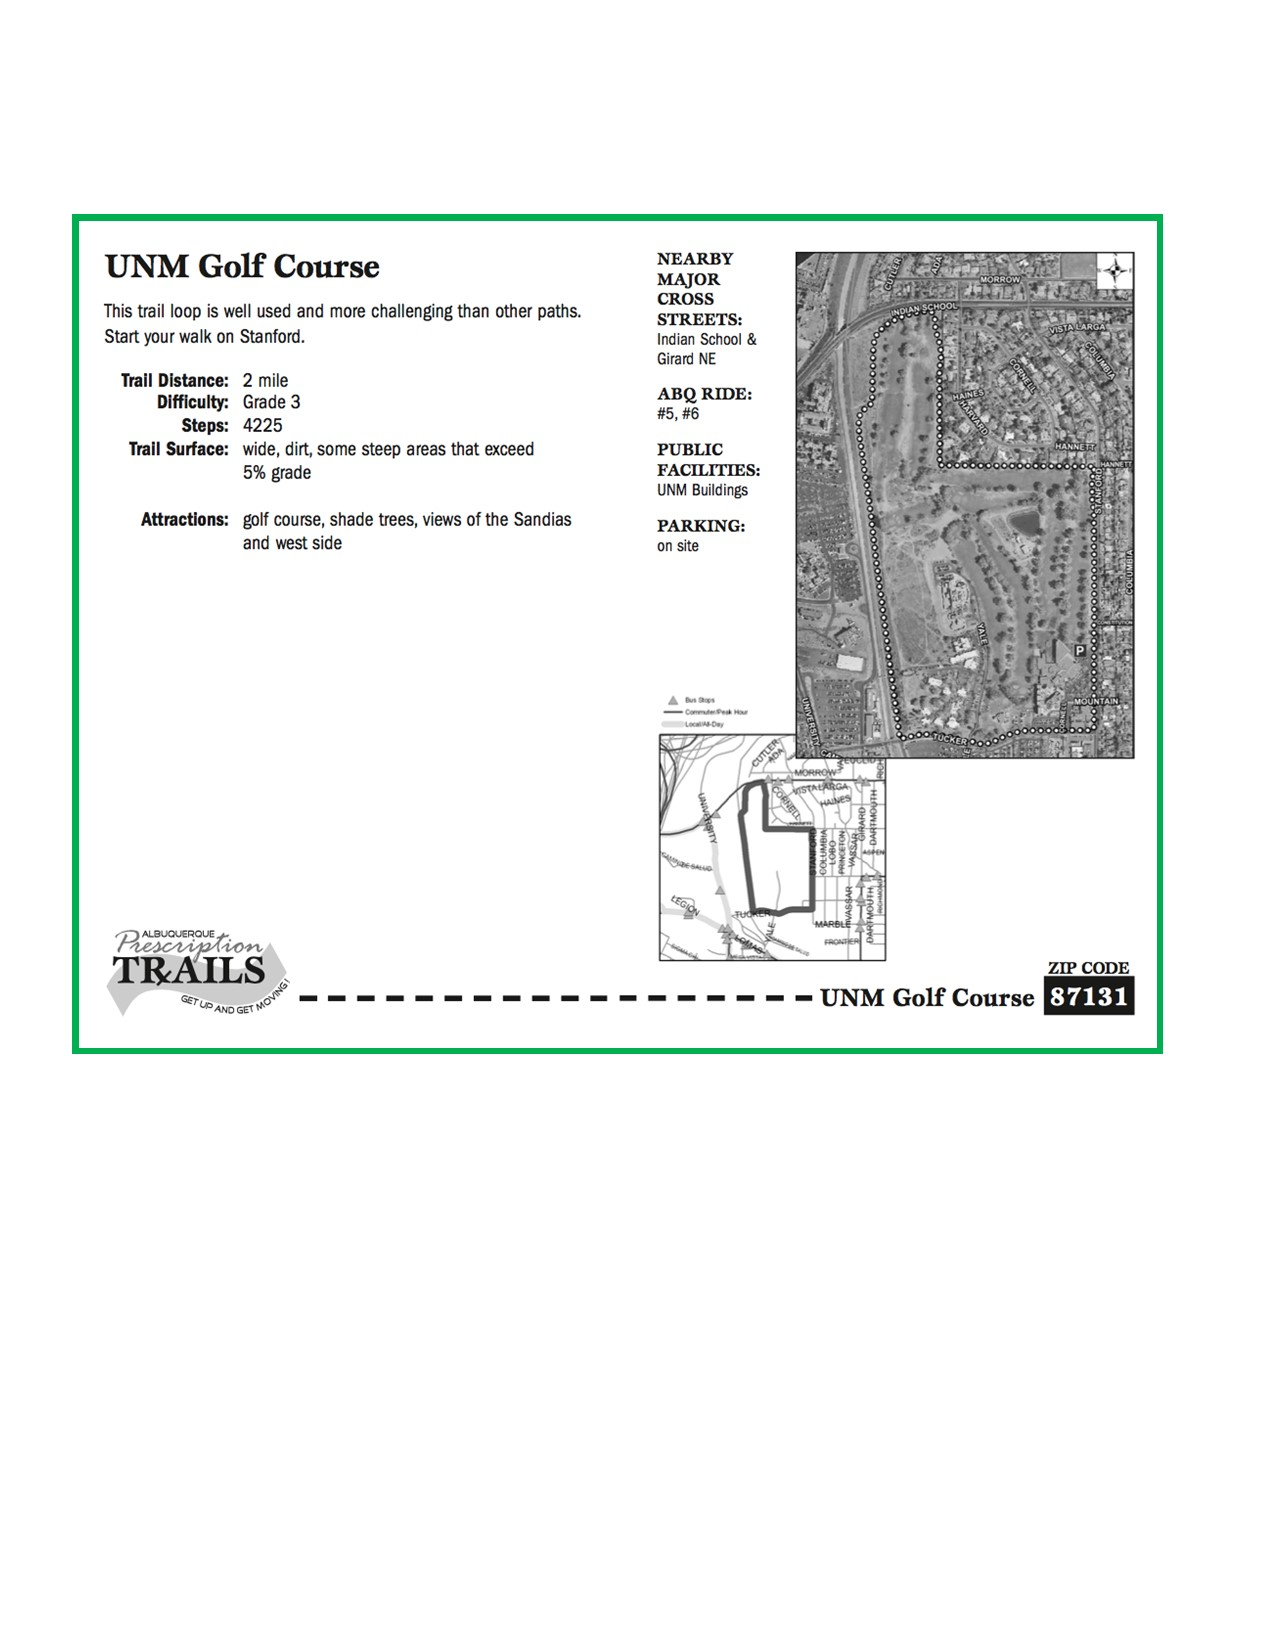 UNM Golf Course Map and Walk